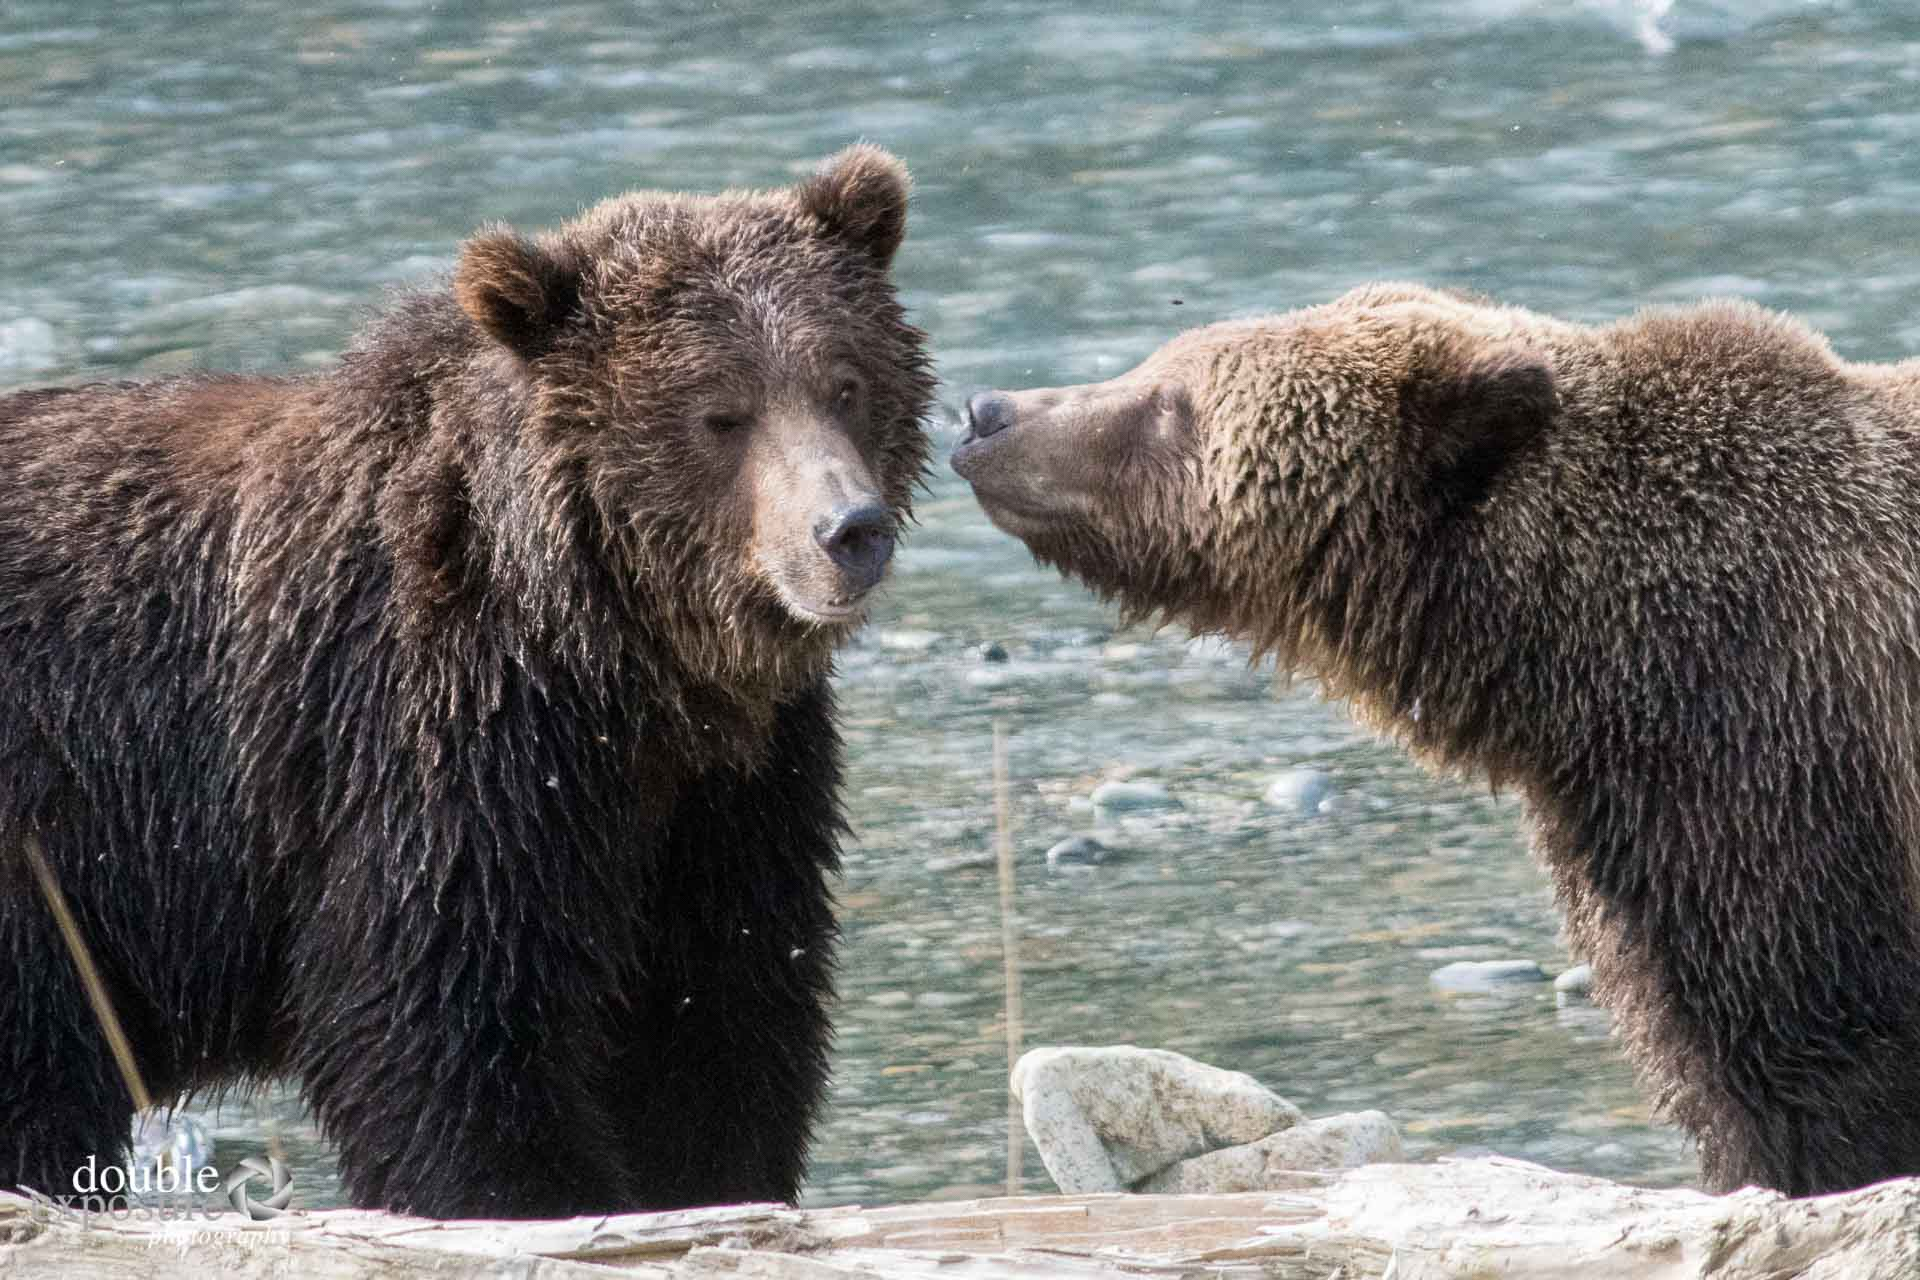 Two bears nuzzle.